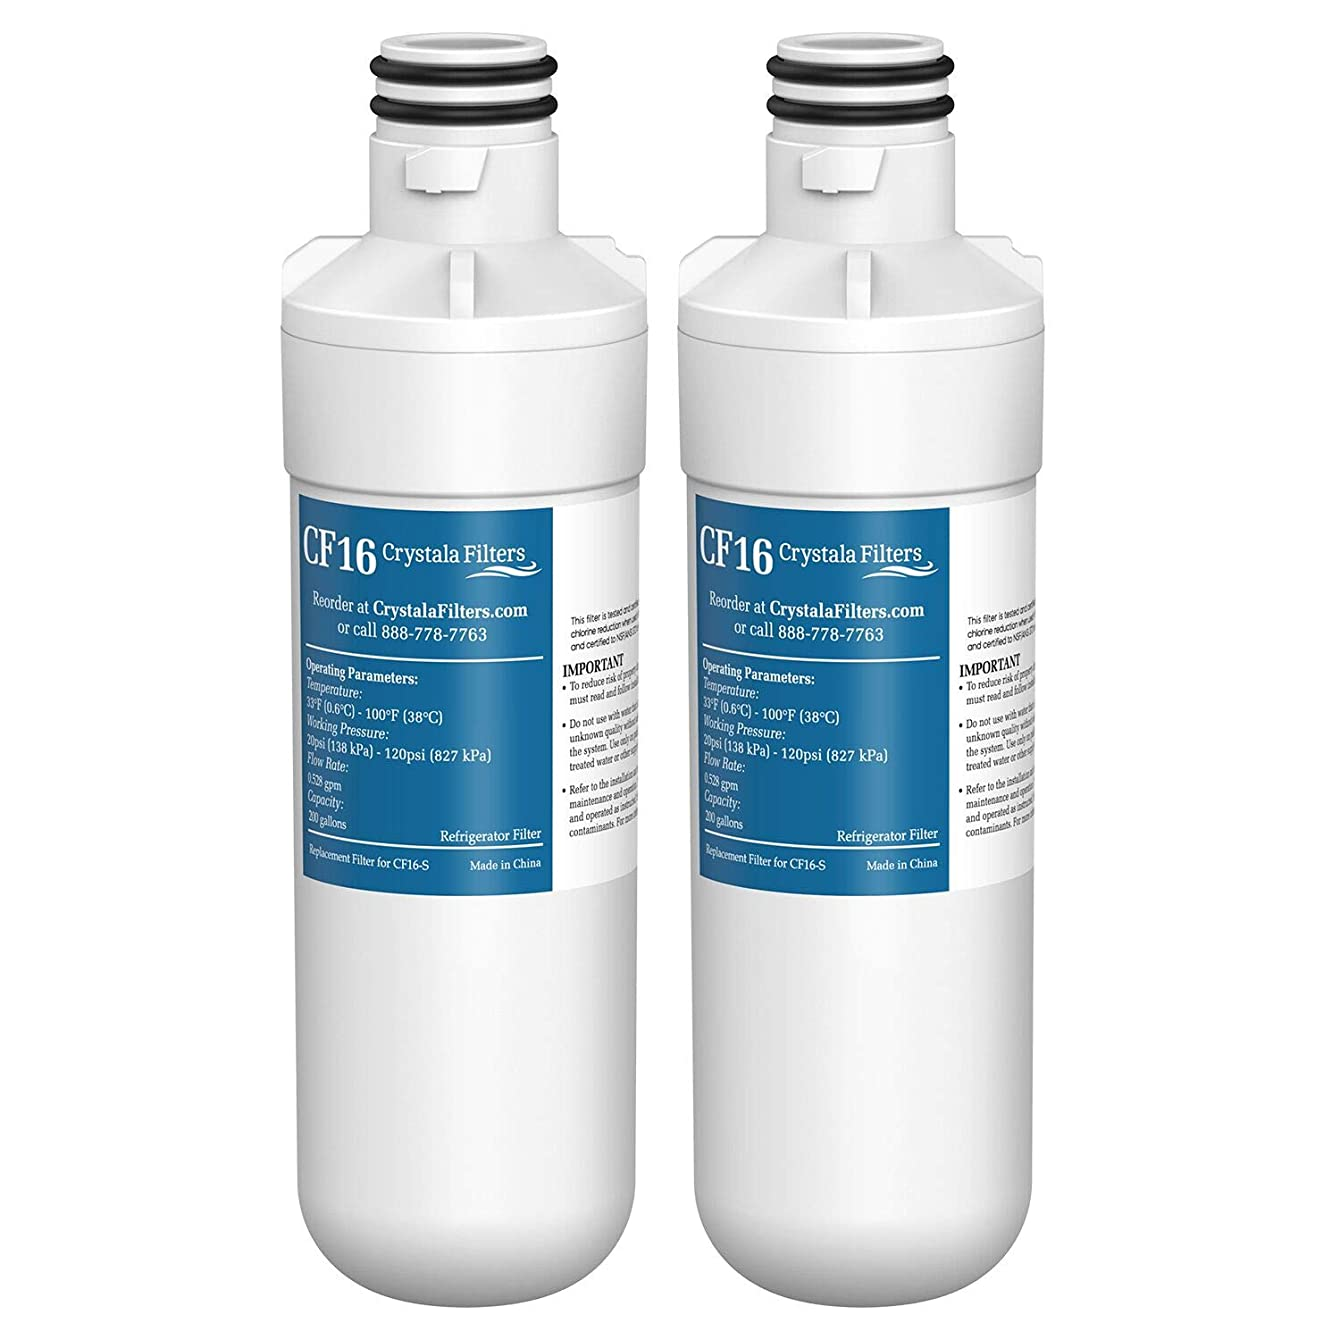 LT1000P Refrigerator Water Filter, Compatible with LG LT1000P, LT1000P, LT1000PC, MDJ64844601, ADQ74793501, ADQ74793502, Kenmore 46-9980, 9980, by Crystala Filters, 2 PACK